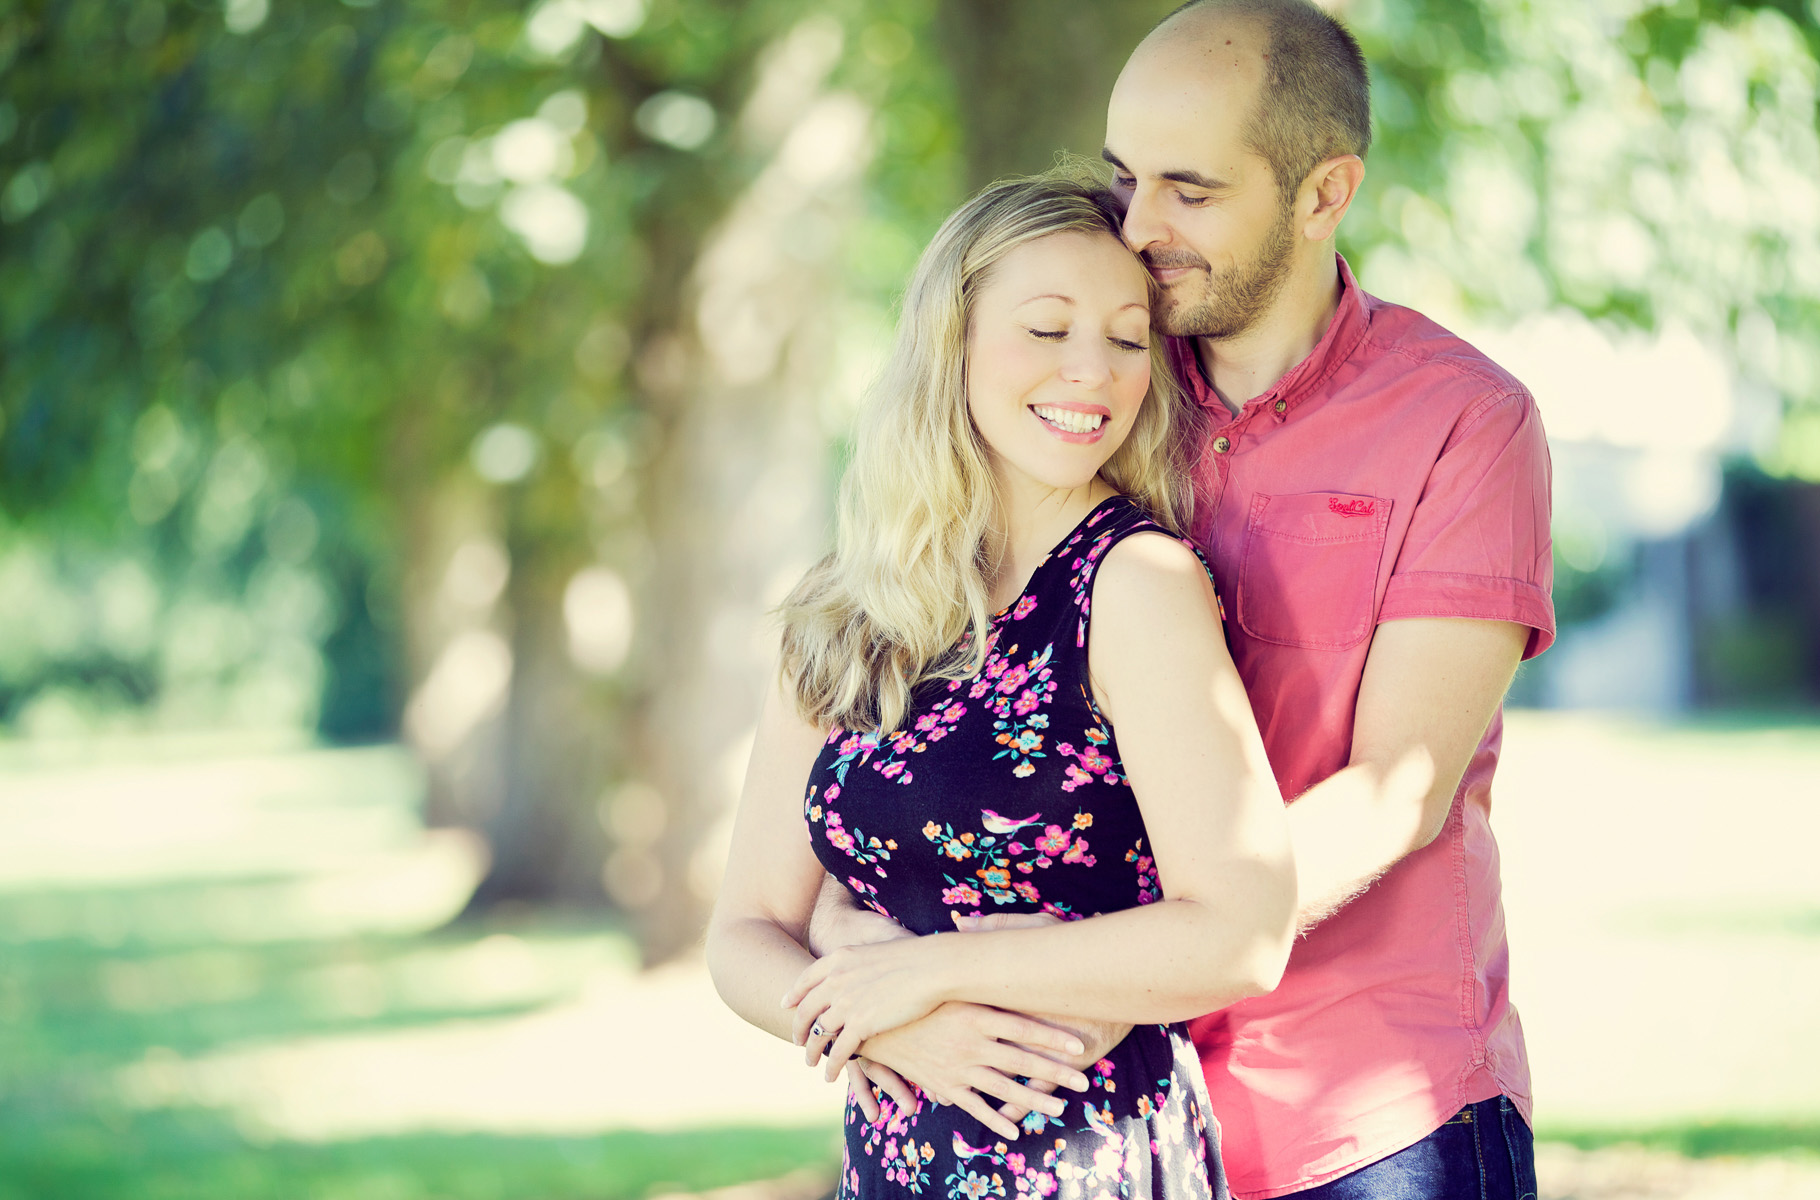 Engagement-Love-Photographer-Winchester-Hampshire-17